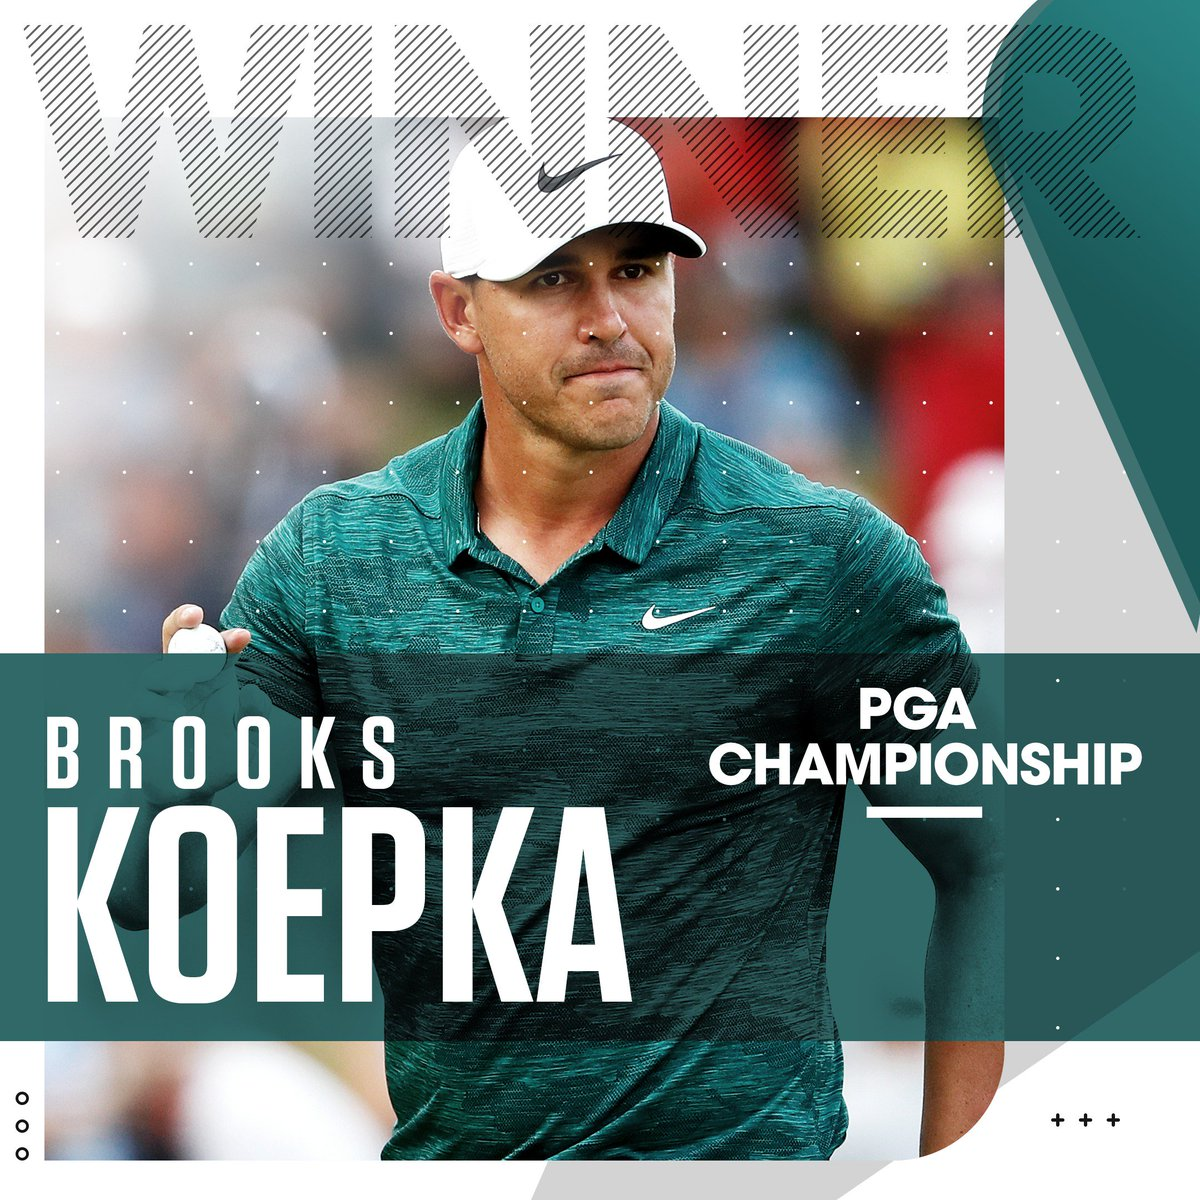 .@BKoepka muscles his way to another major title! #PGAChamp <br>http://pic.twitter.com/EkIgLdKRxt